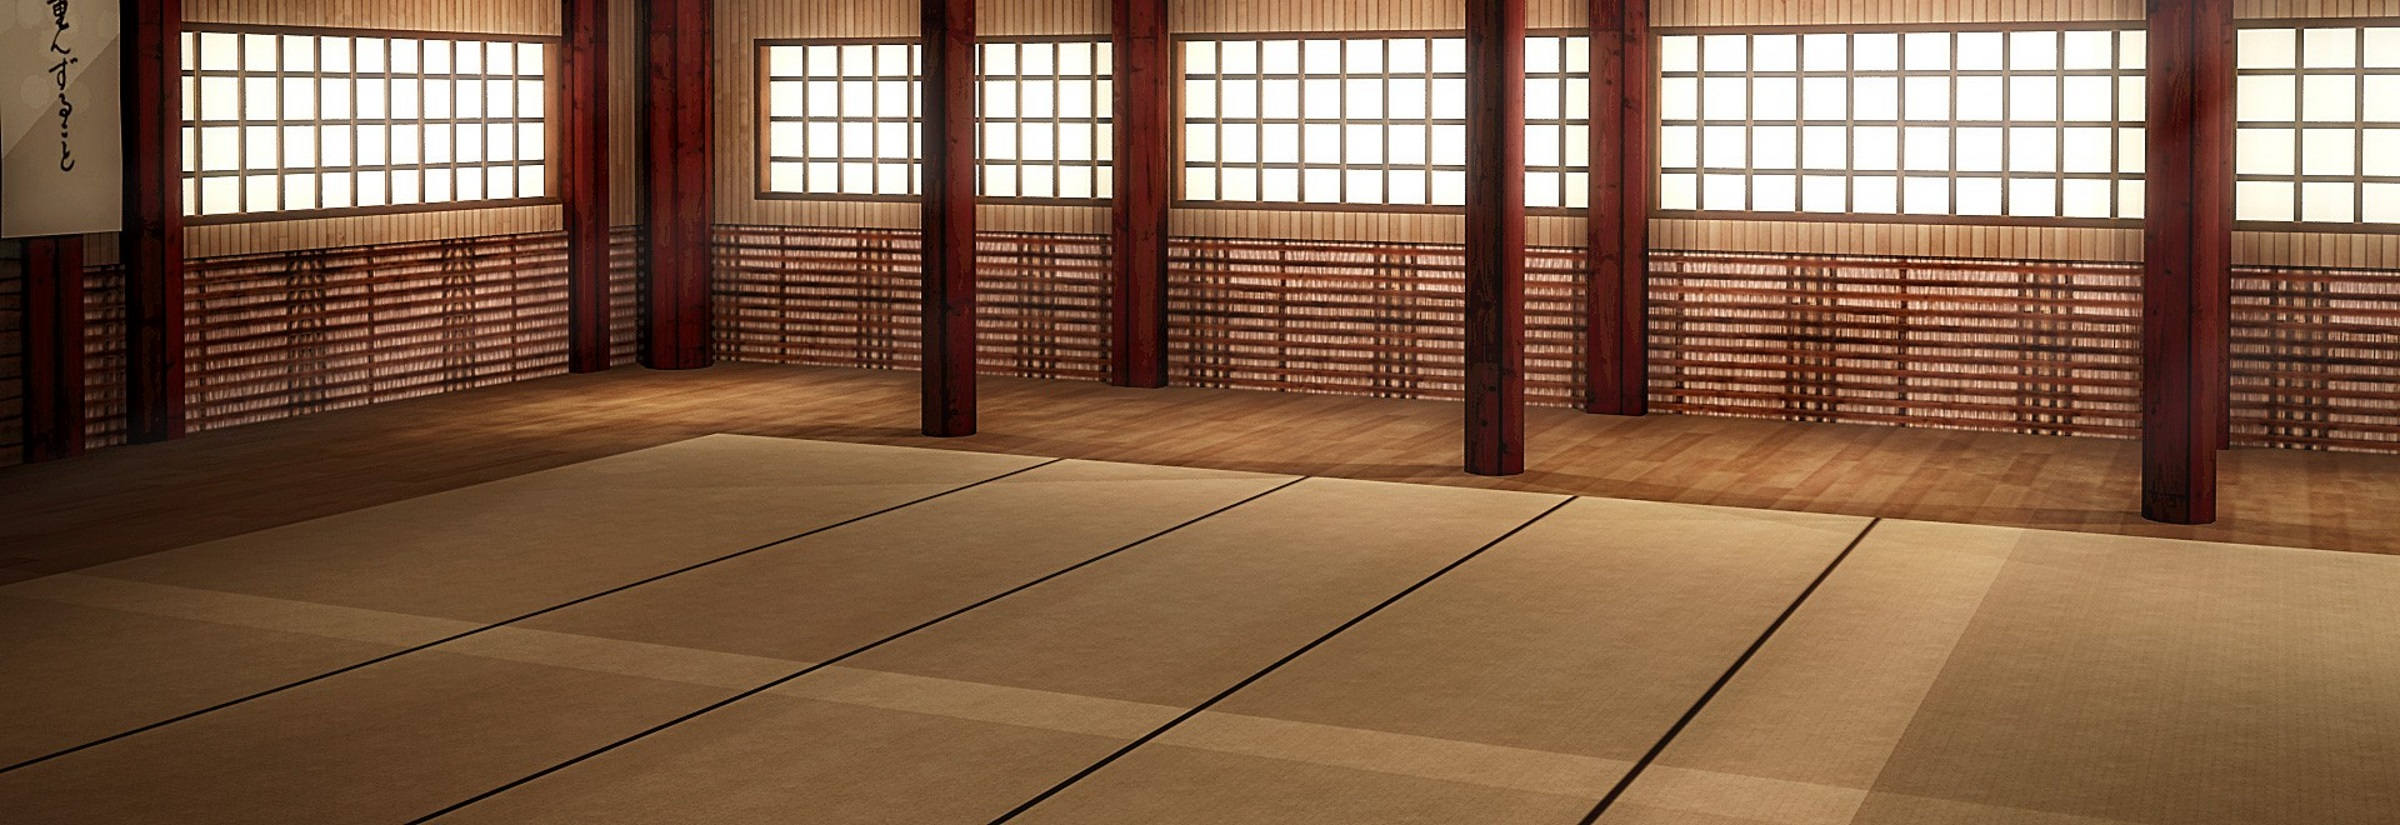 XL Background - Dojo 01.jpg